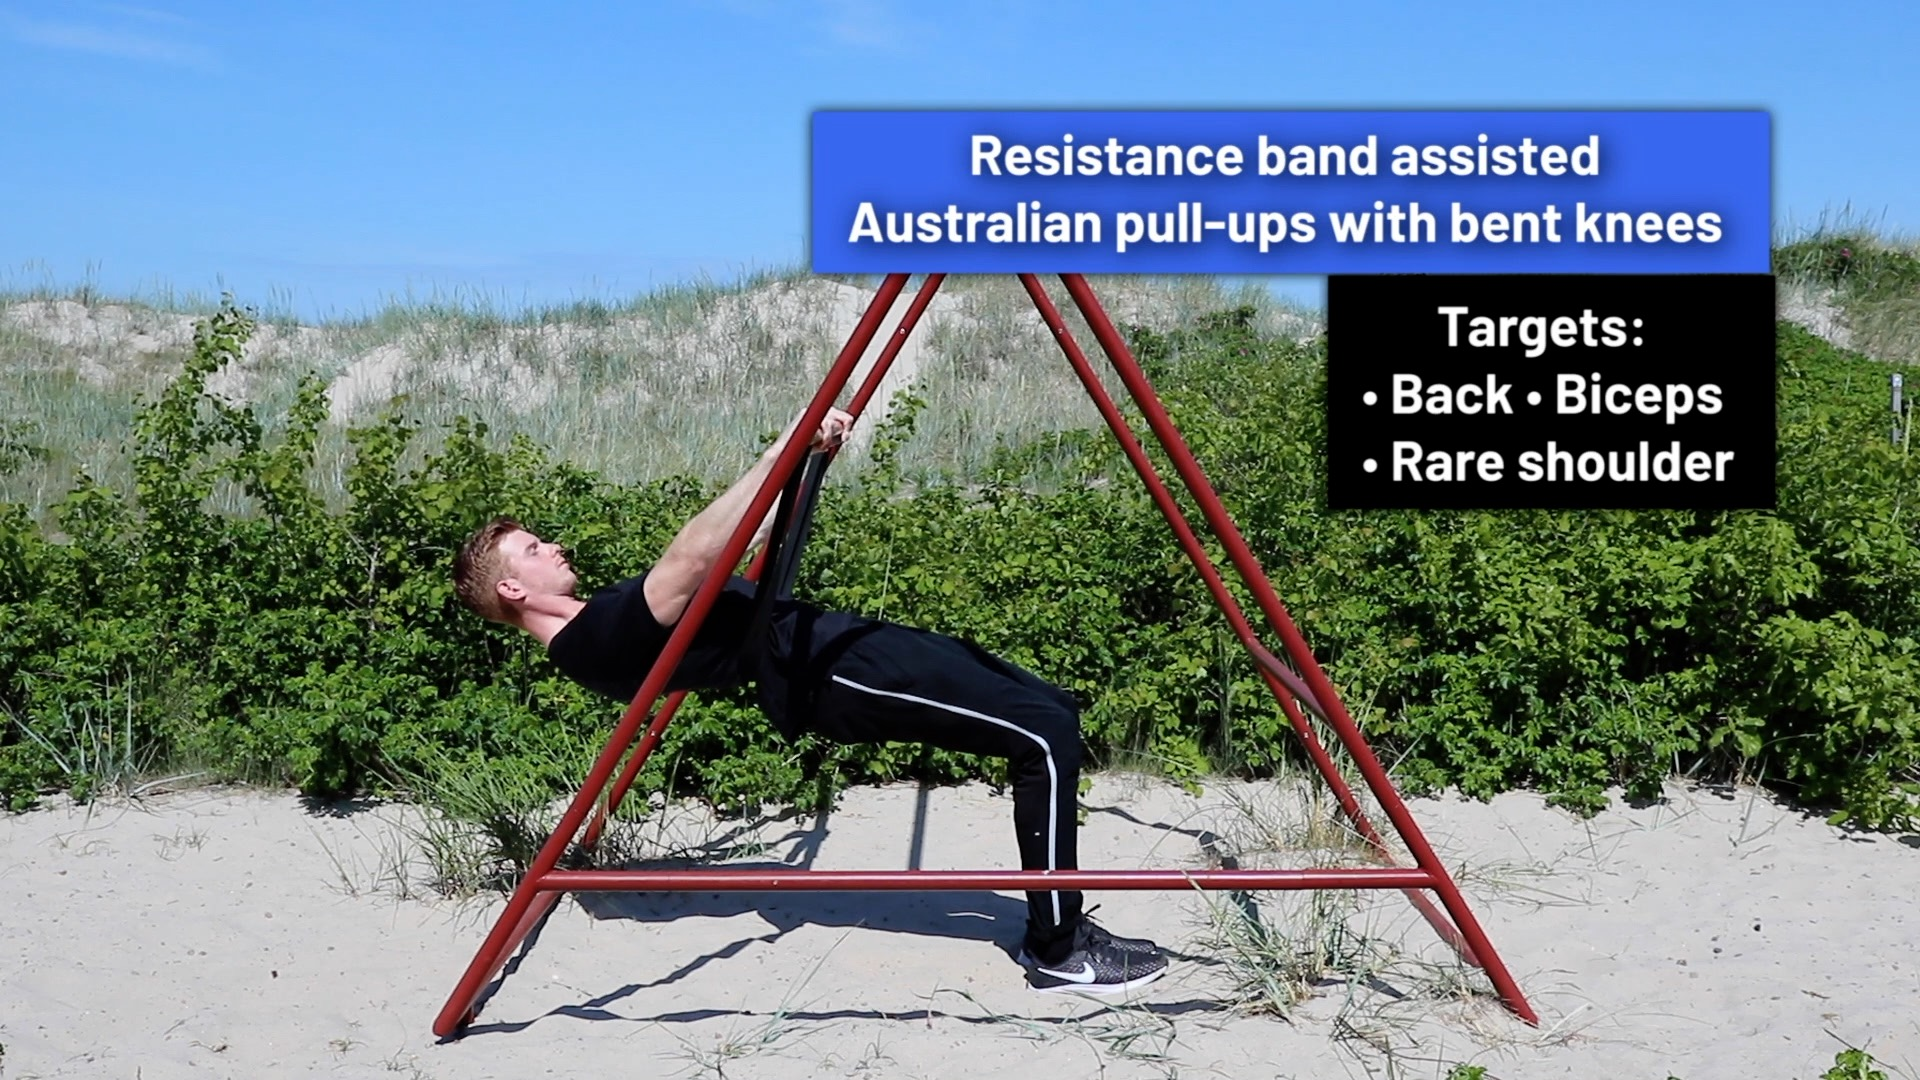 Resistance band assisted Australian pull-ups with bent knees